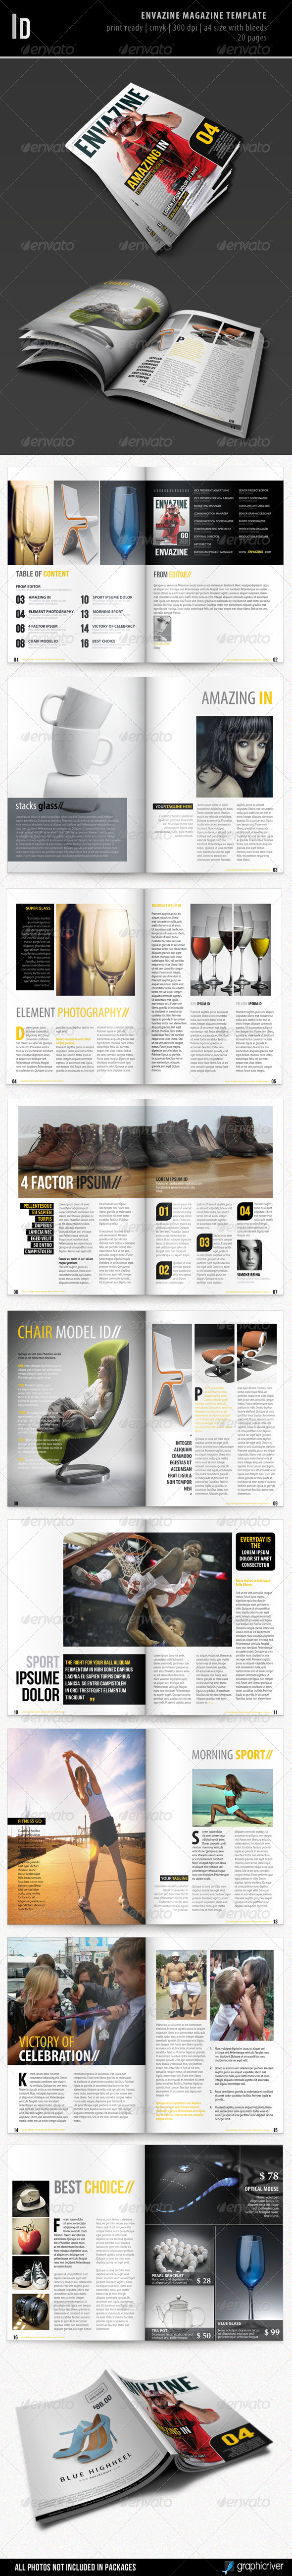 GraphicRiver Envazine Magazine Template 2859221